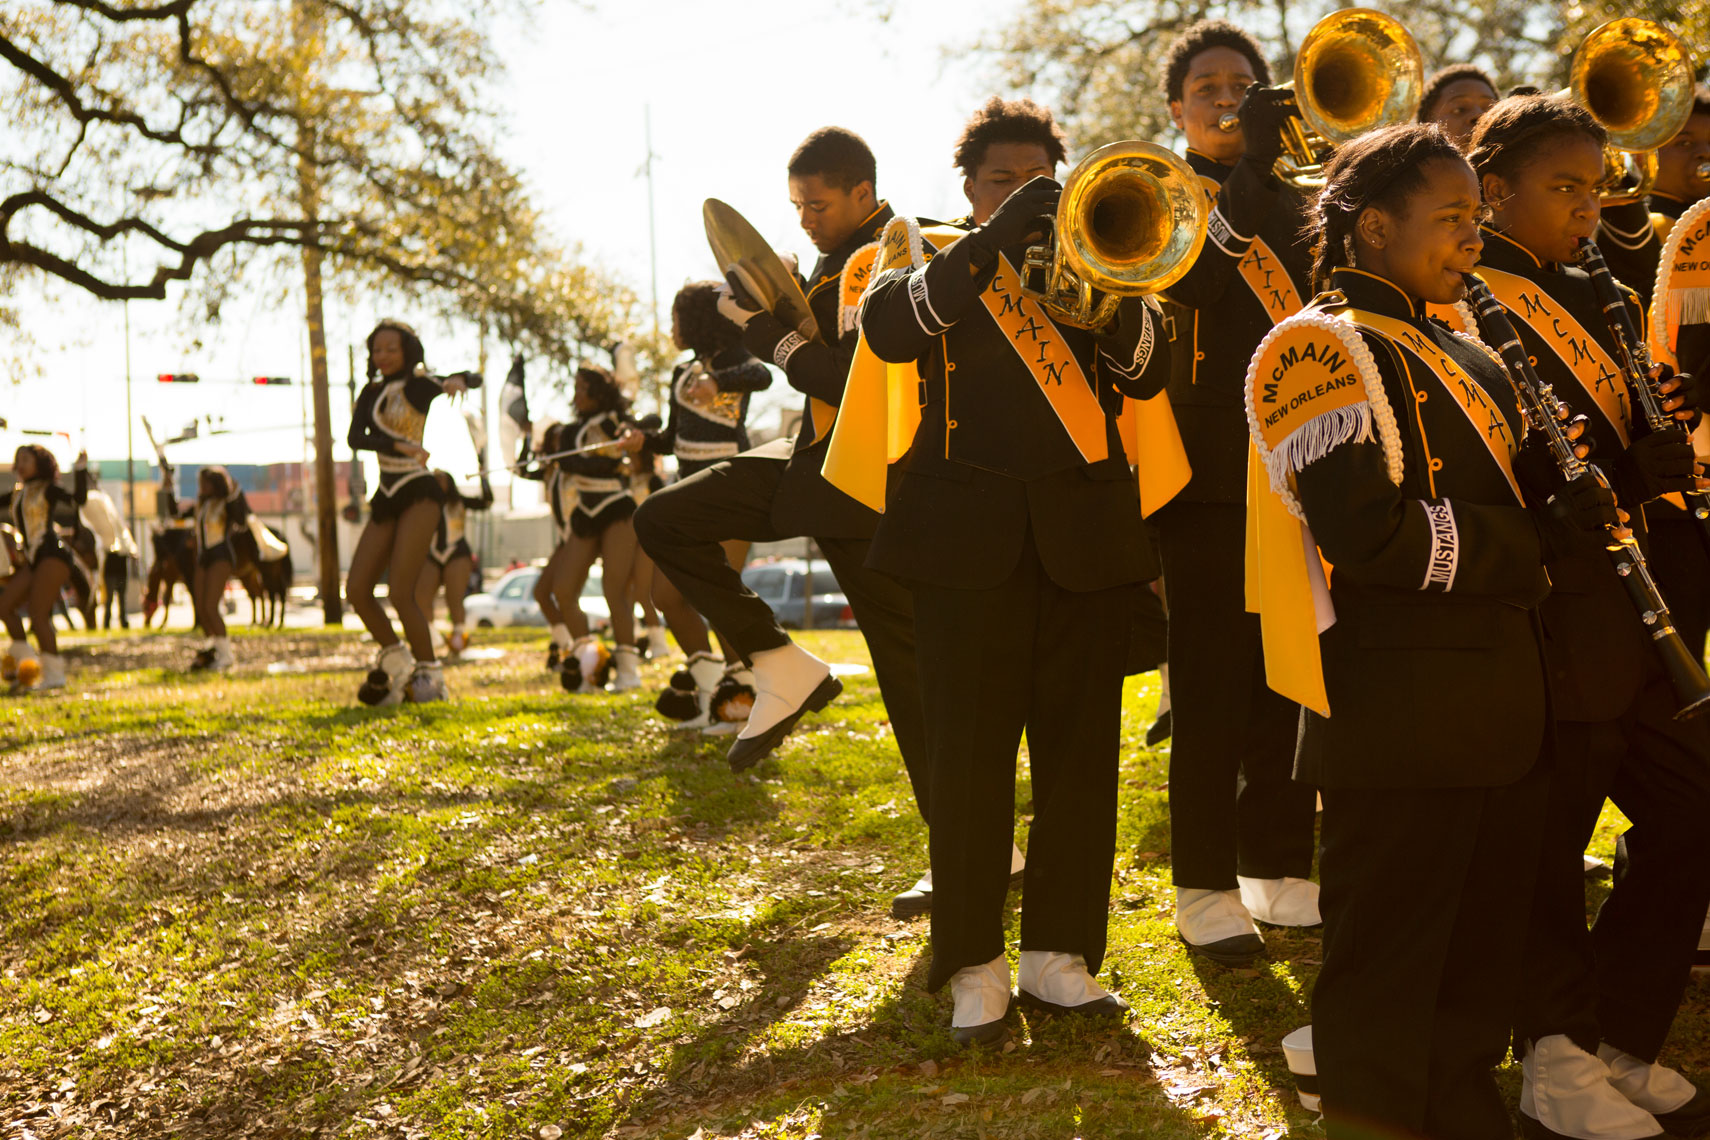 14_MKris_Davidson_National_Geographic_New_Orleans_Marching_Band